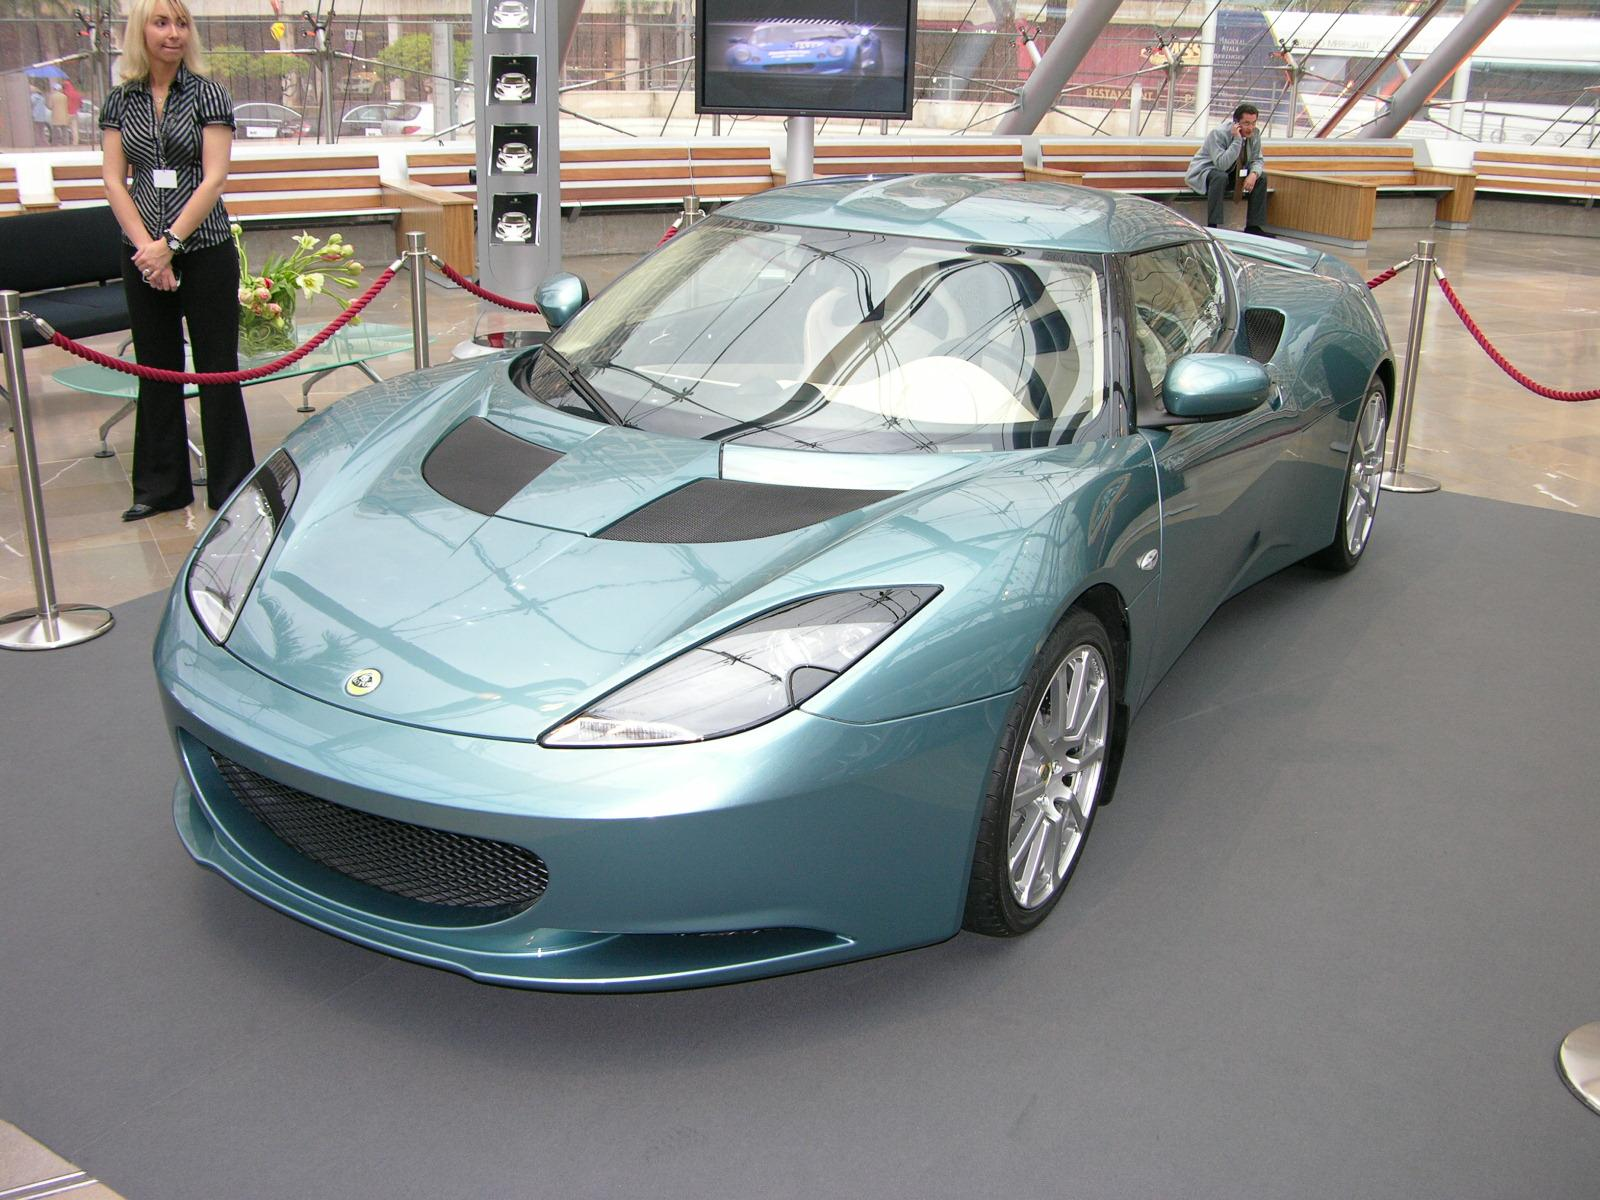 Lotus_Evora_-_Flickr_-_The_Car_Spy_(1).jpg